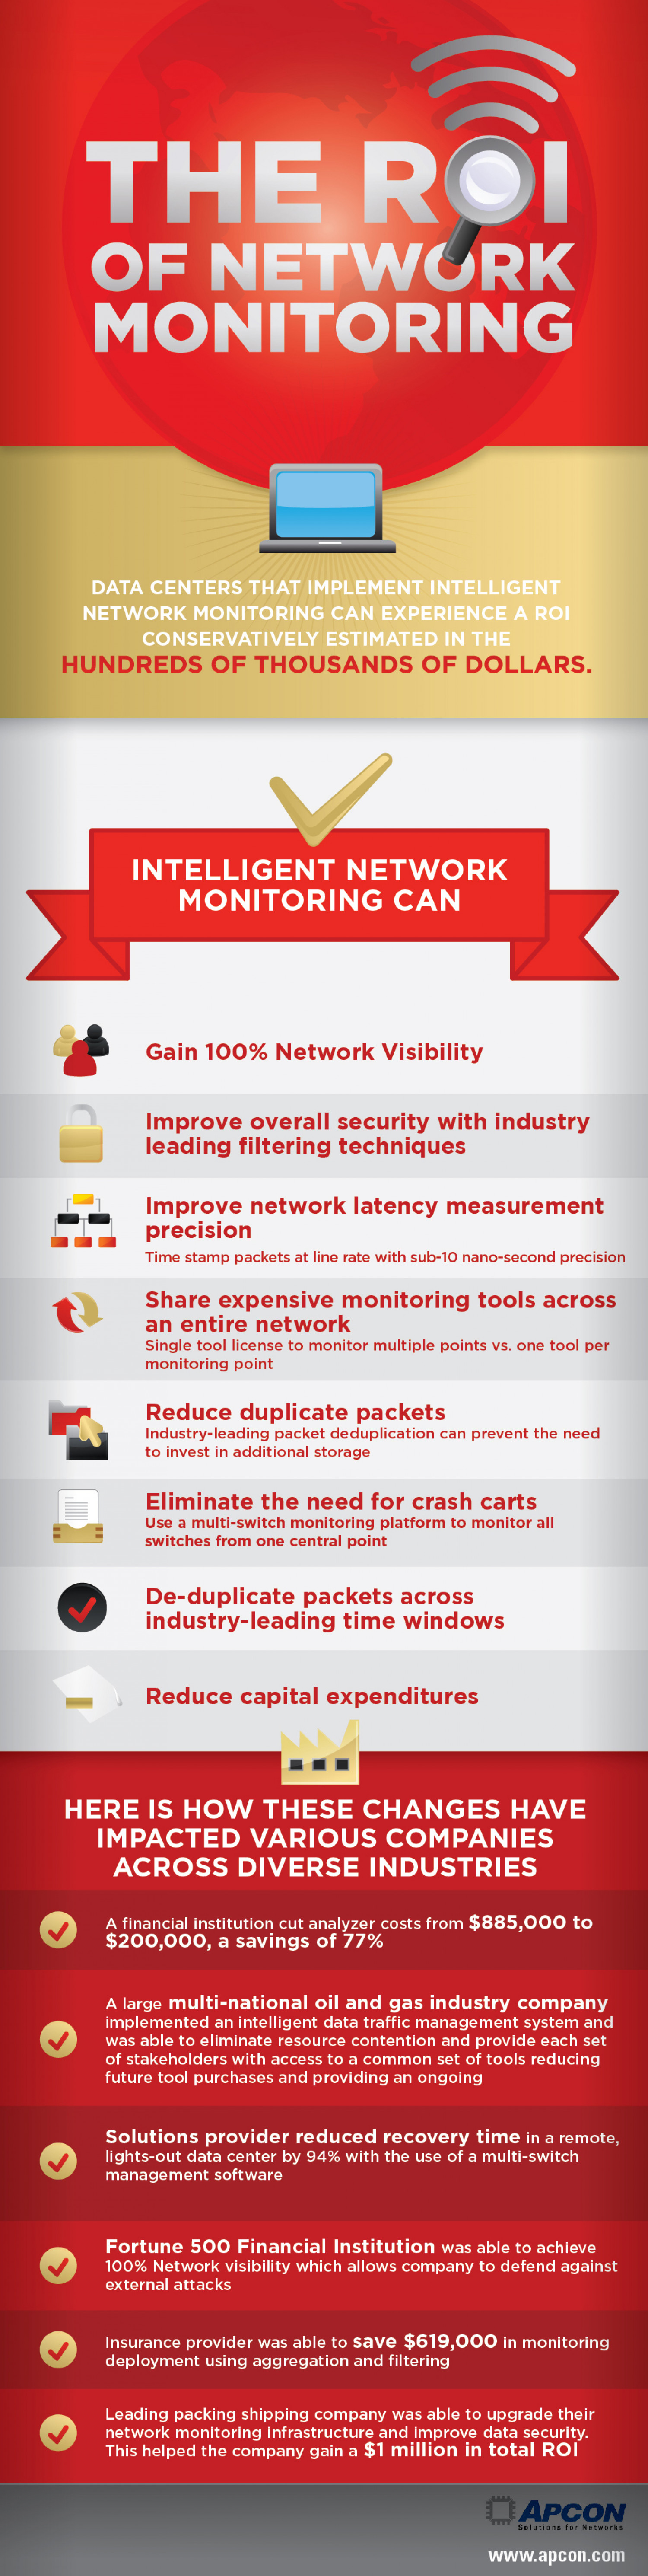 The ROI of Network Monitoring Infographic